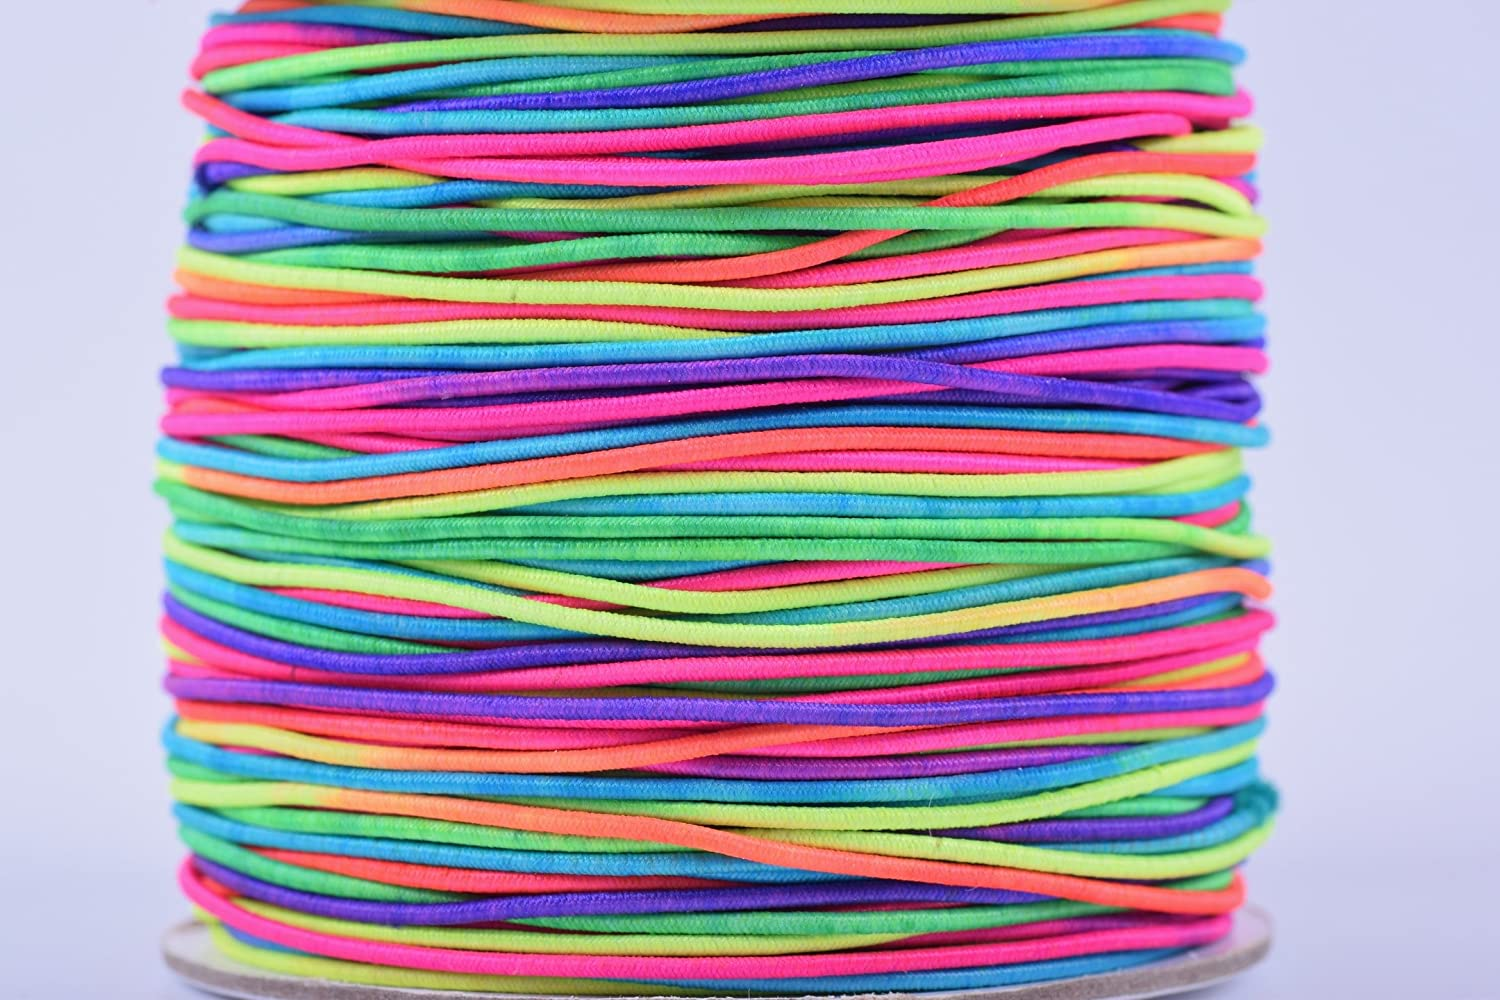 KONMAY 1 Roll 1.0mm 100 Yards Elastic Cord/shock cord (1.0mm, Rainbow)